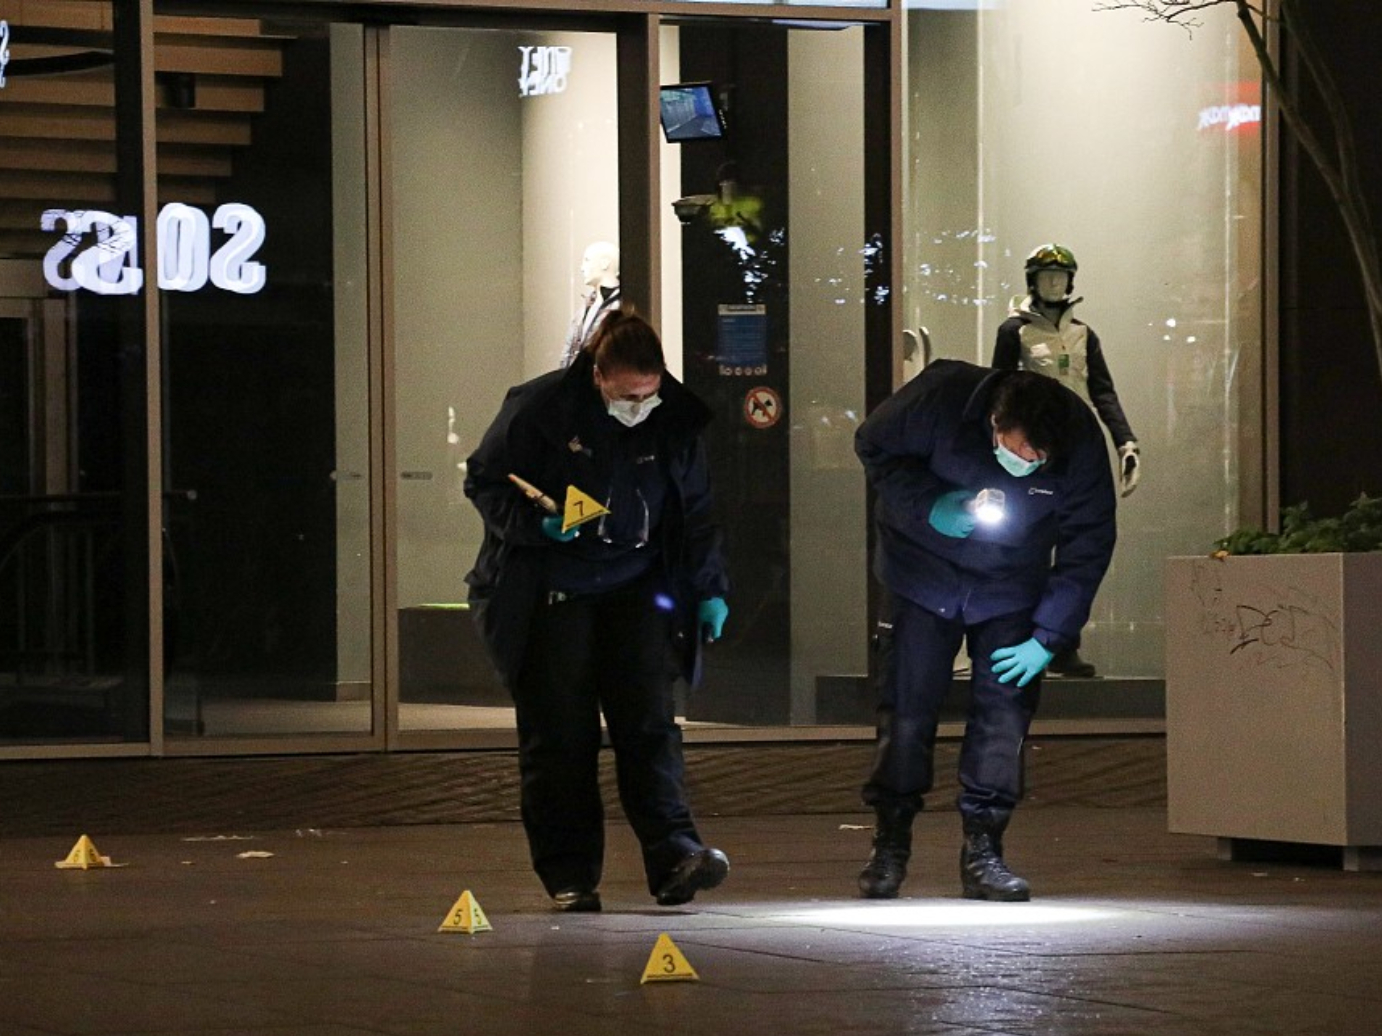 3 wounded in stabbing incident in The Hague, perpetrator on run